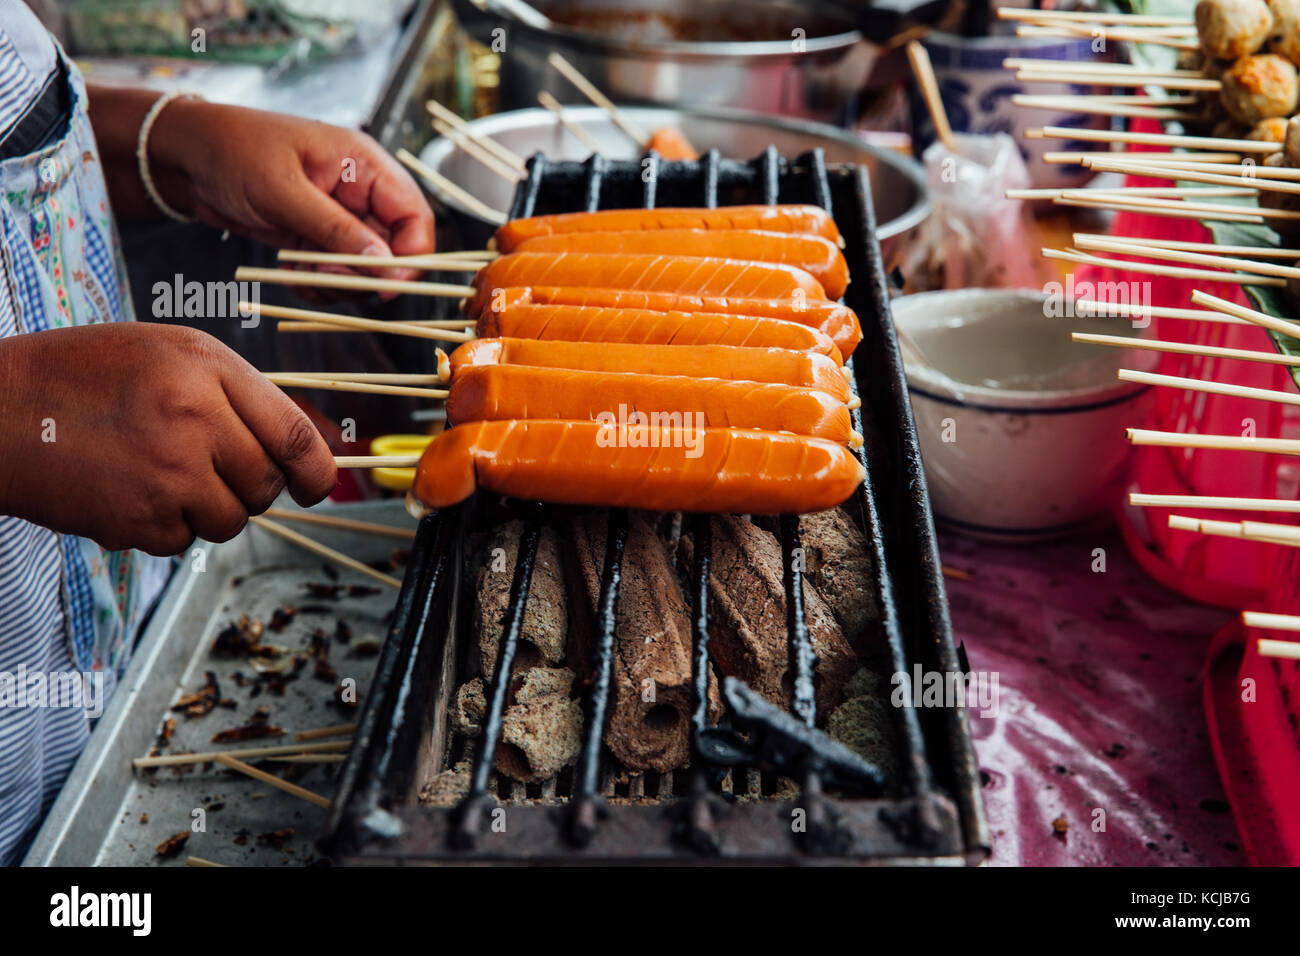 A street vendor makes grilled Thai sausages on skewers at the Warorot Market, Chiang Mai, Thailand. - Stock Image